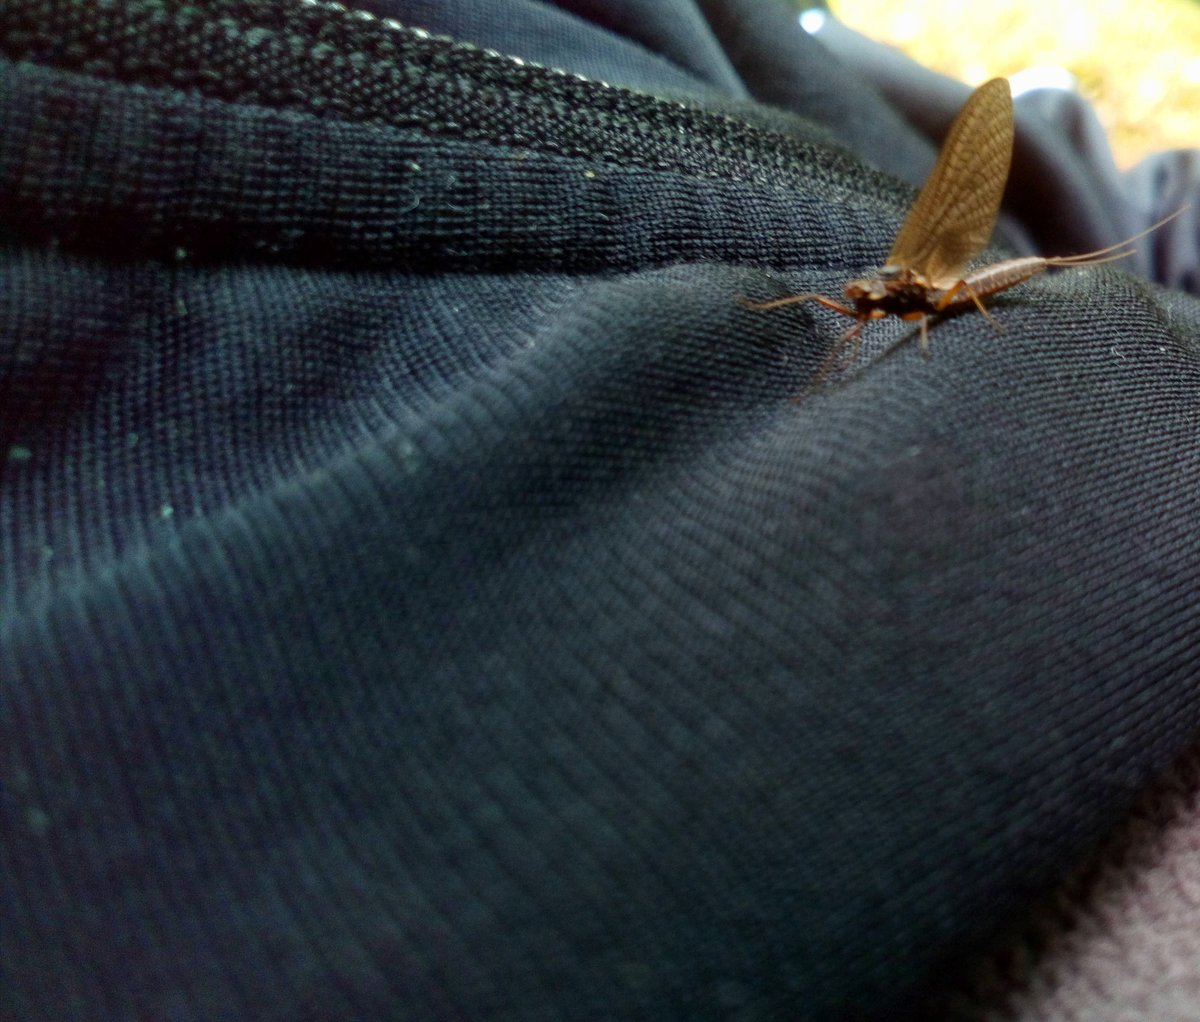 The insect was trying to climb on the jacket Good climber we can say  #photography #outdoors #nature #insects #wildlifepic.twitter.com/851to0XVQm